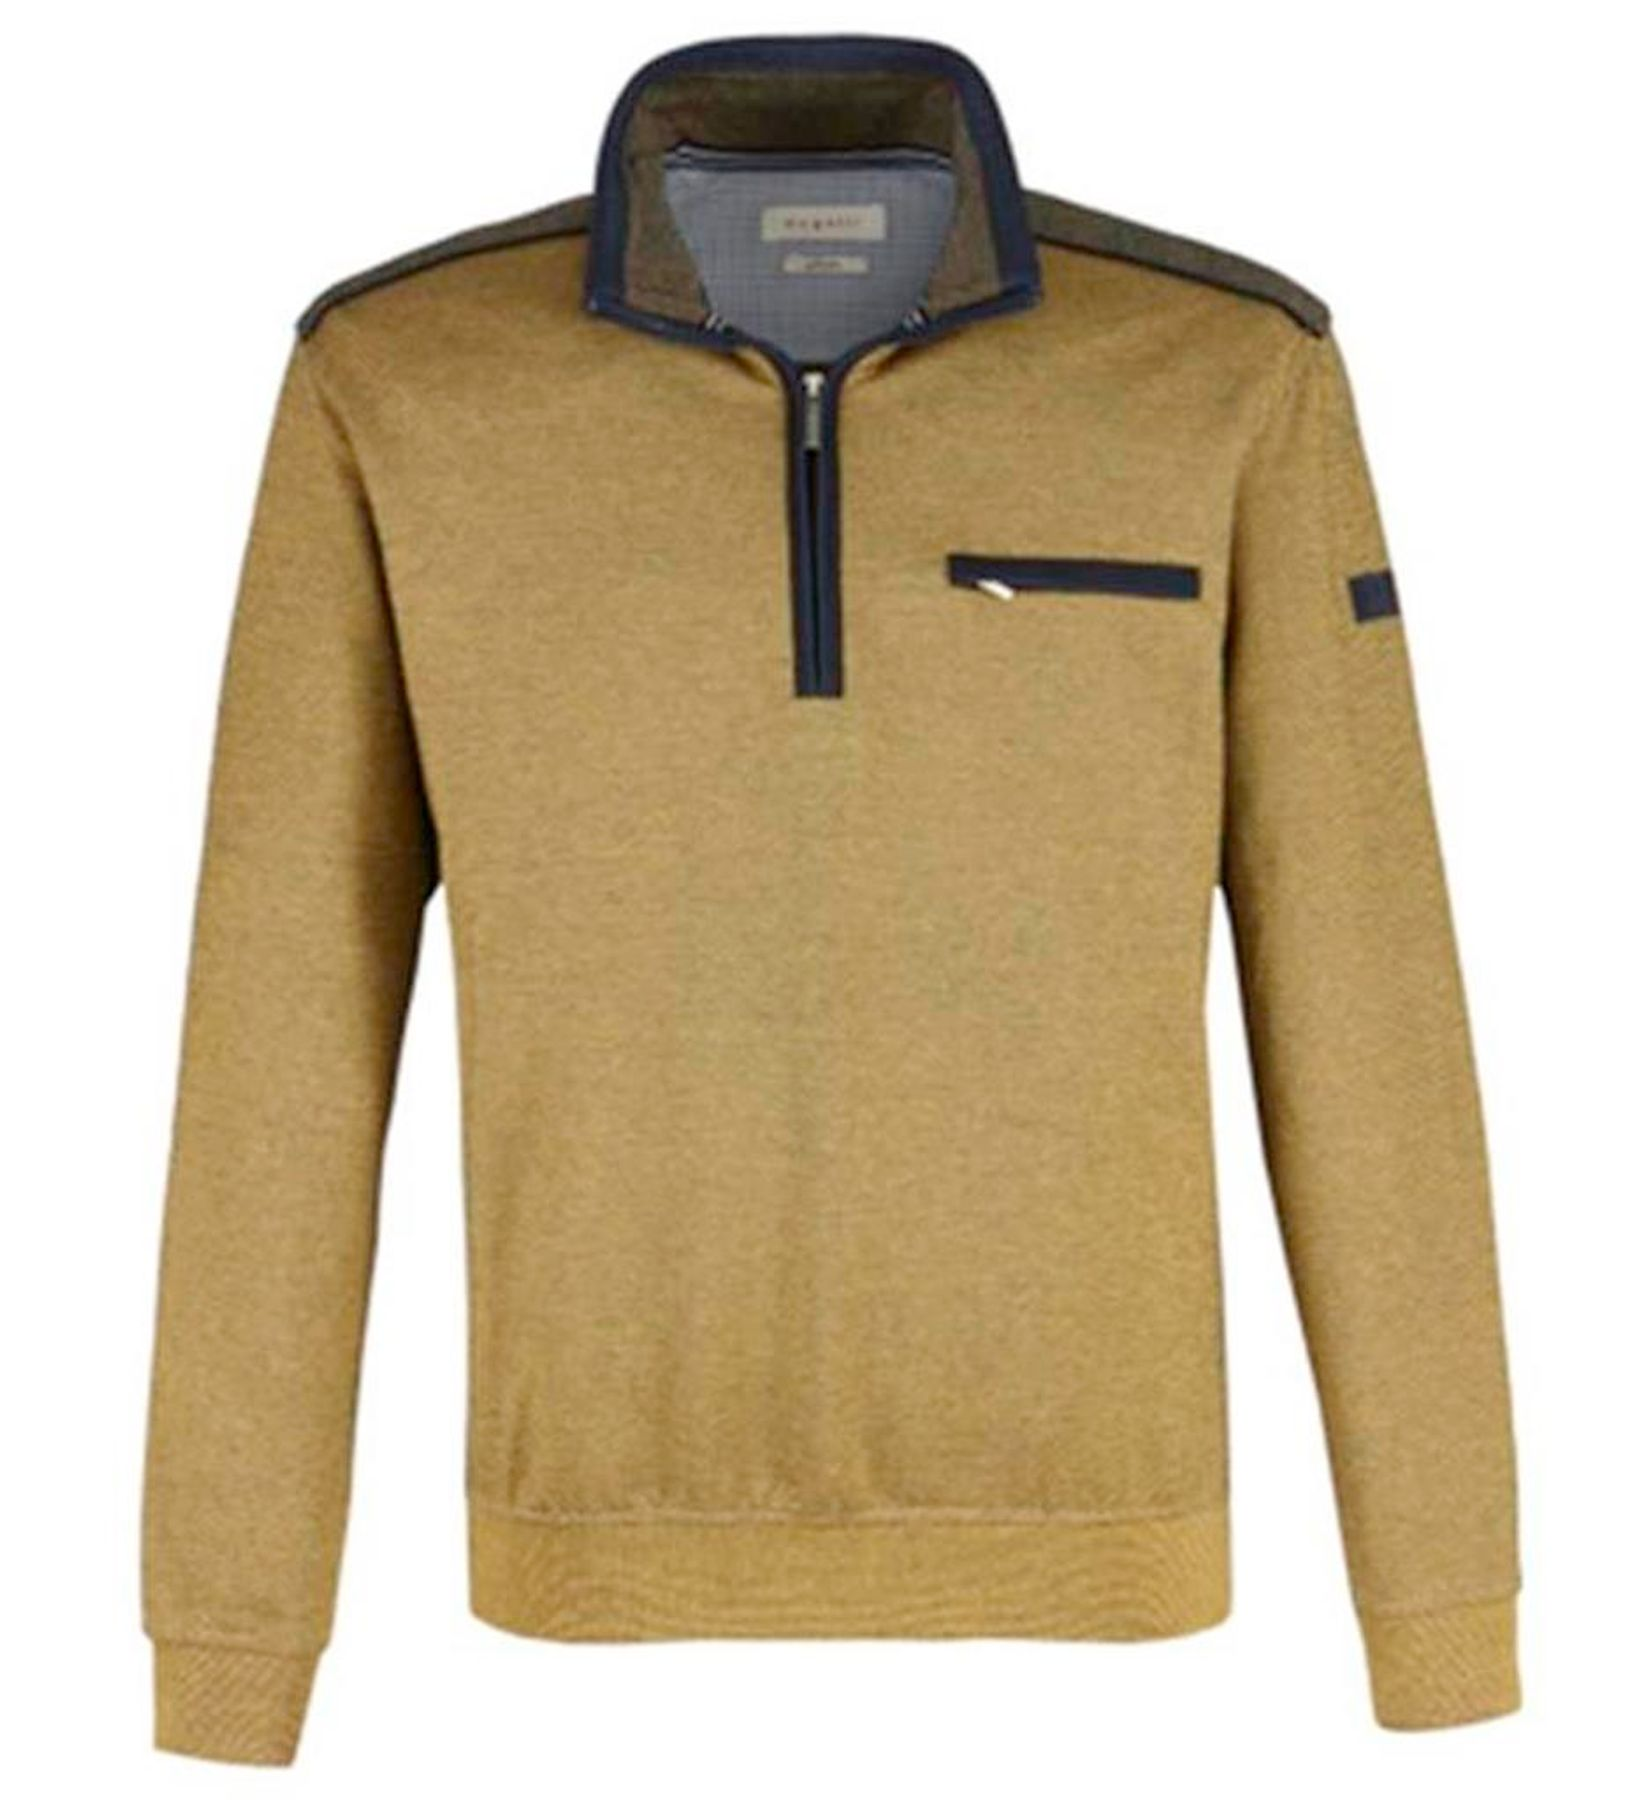 Bugatti - Herren Sweat Troyer (Art. Nr.: 95140-8500) – Bild 2